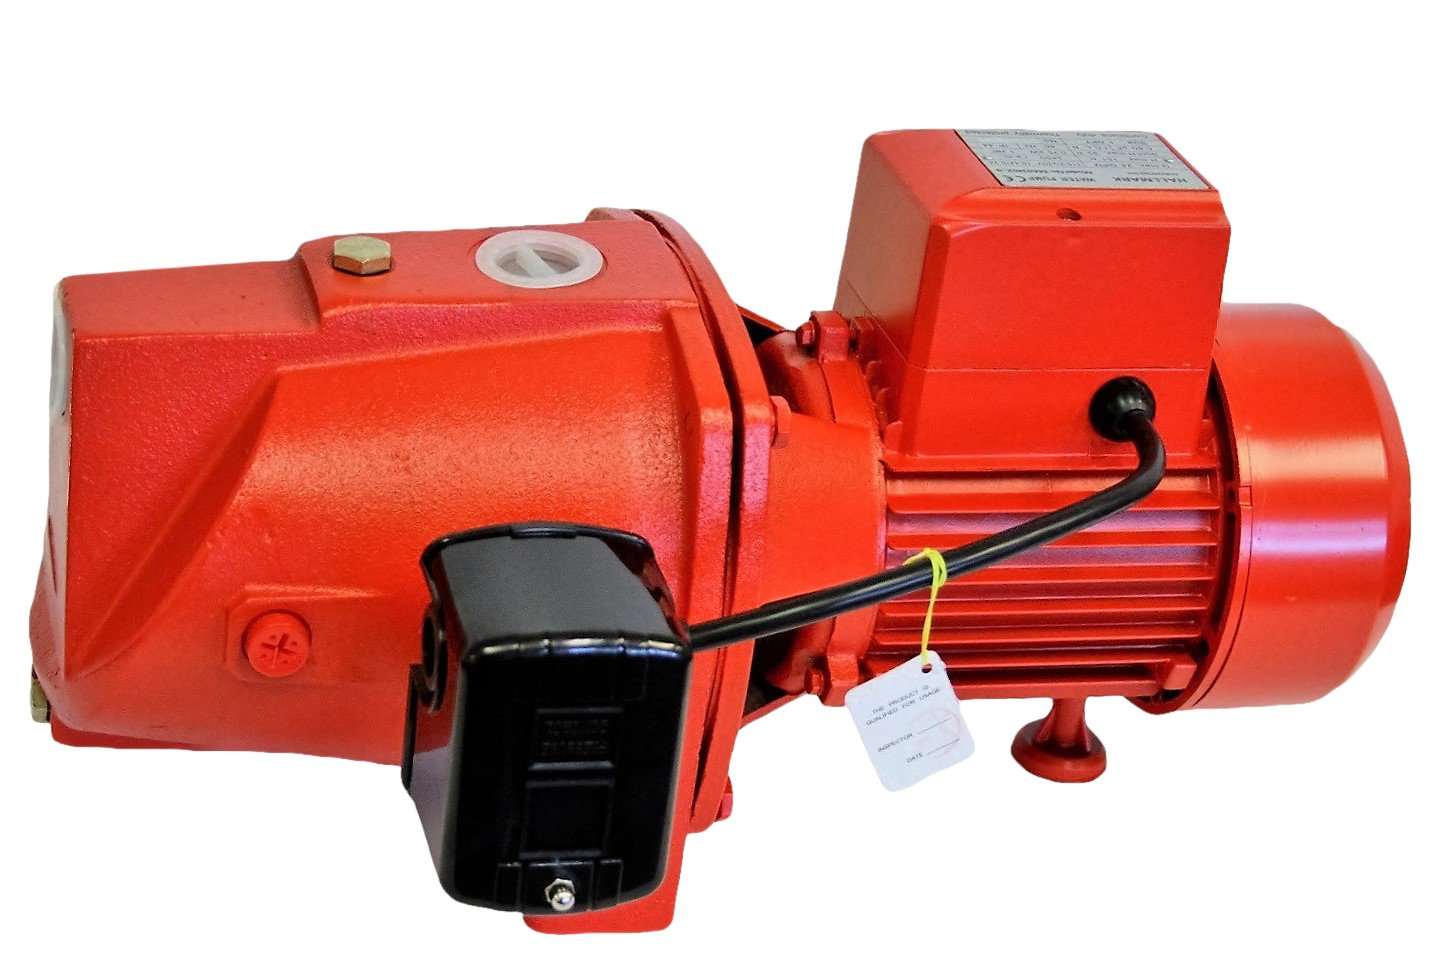 Hallmark Industries MA0345X-6 Shallow Well Jet Pump with Pressure Swith, Heavy Duty, 1/2 hp, 12.5 GPM, 115V/230V